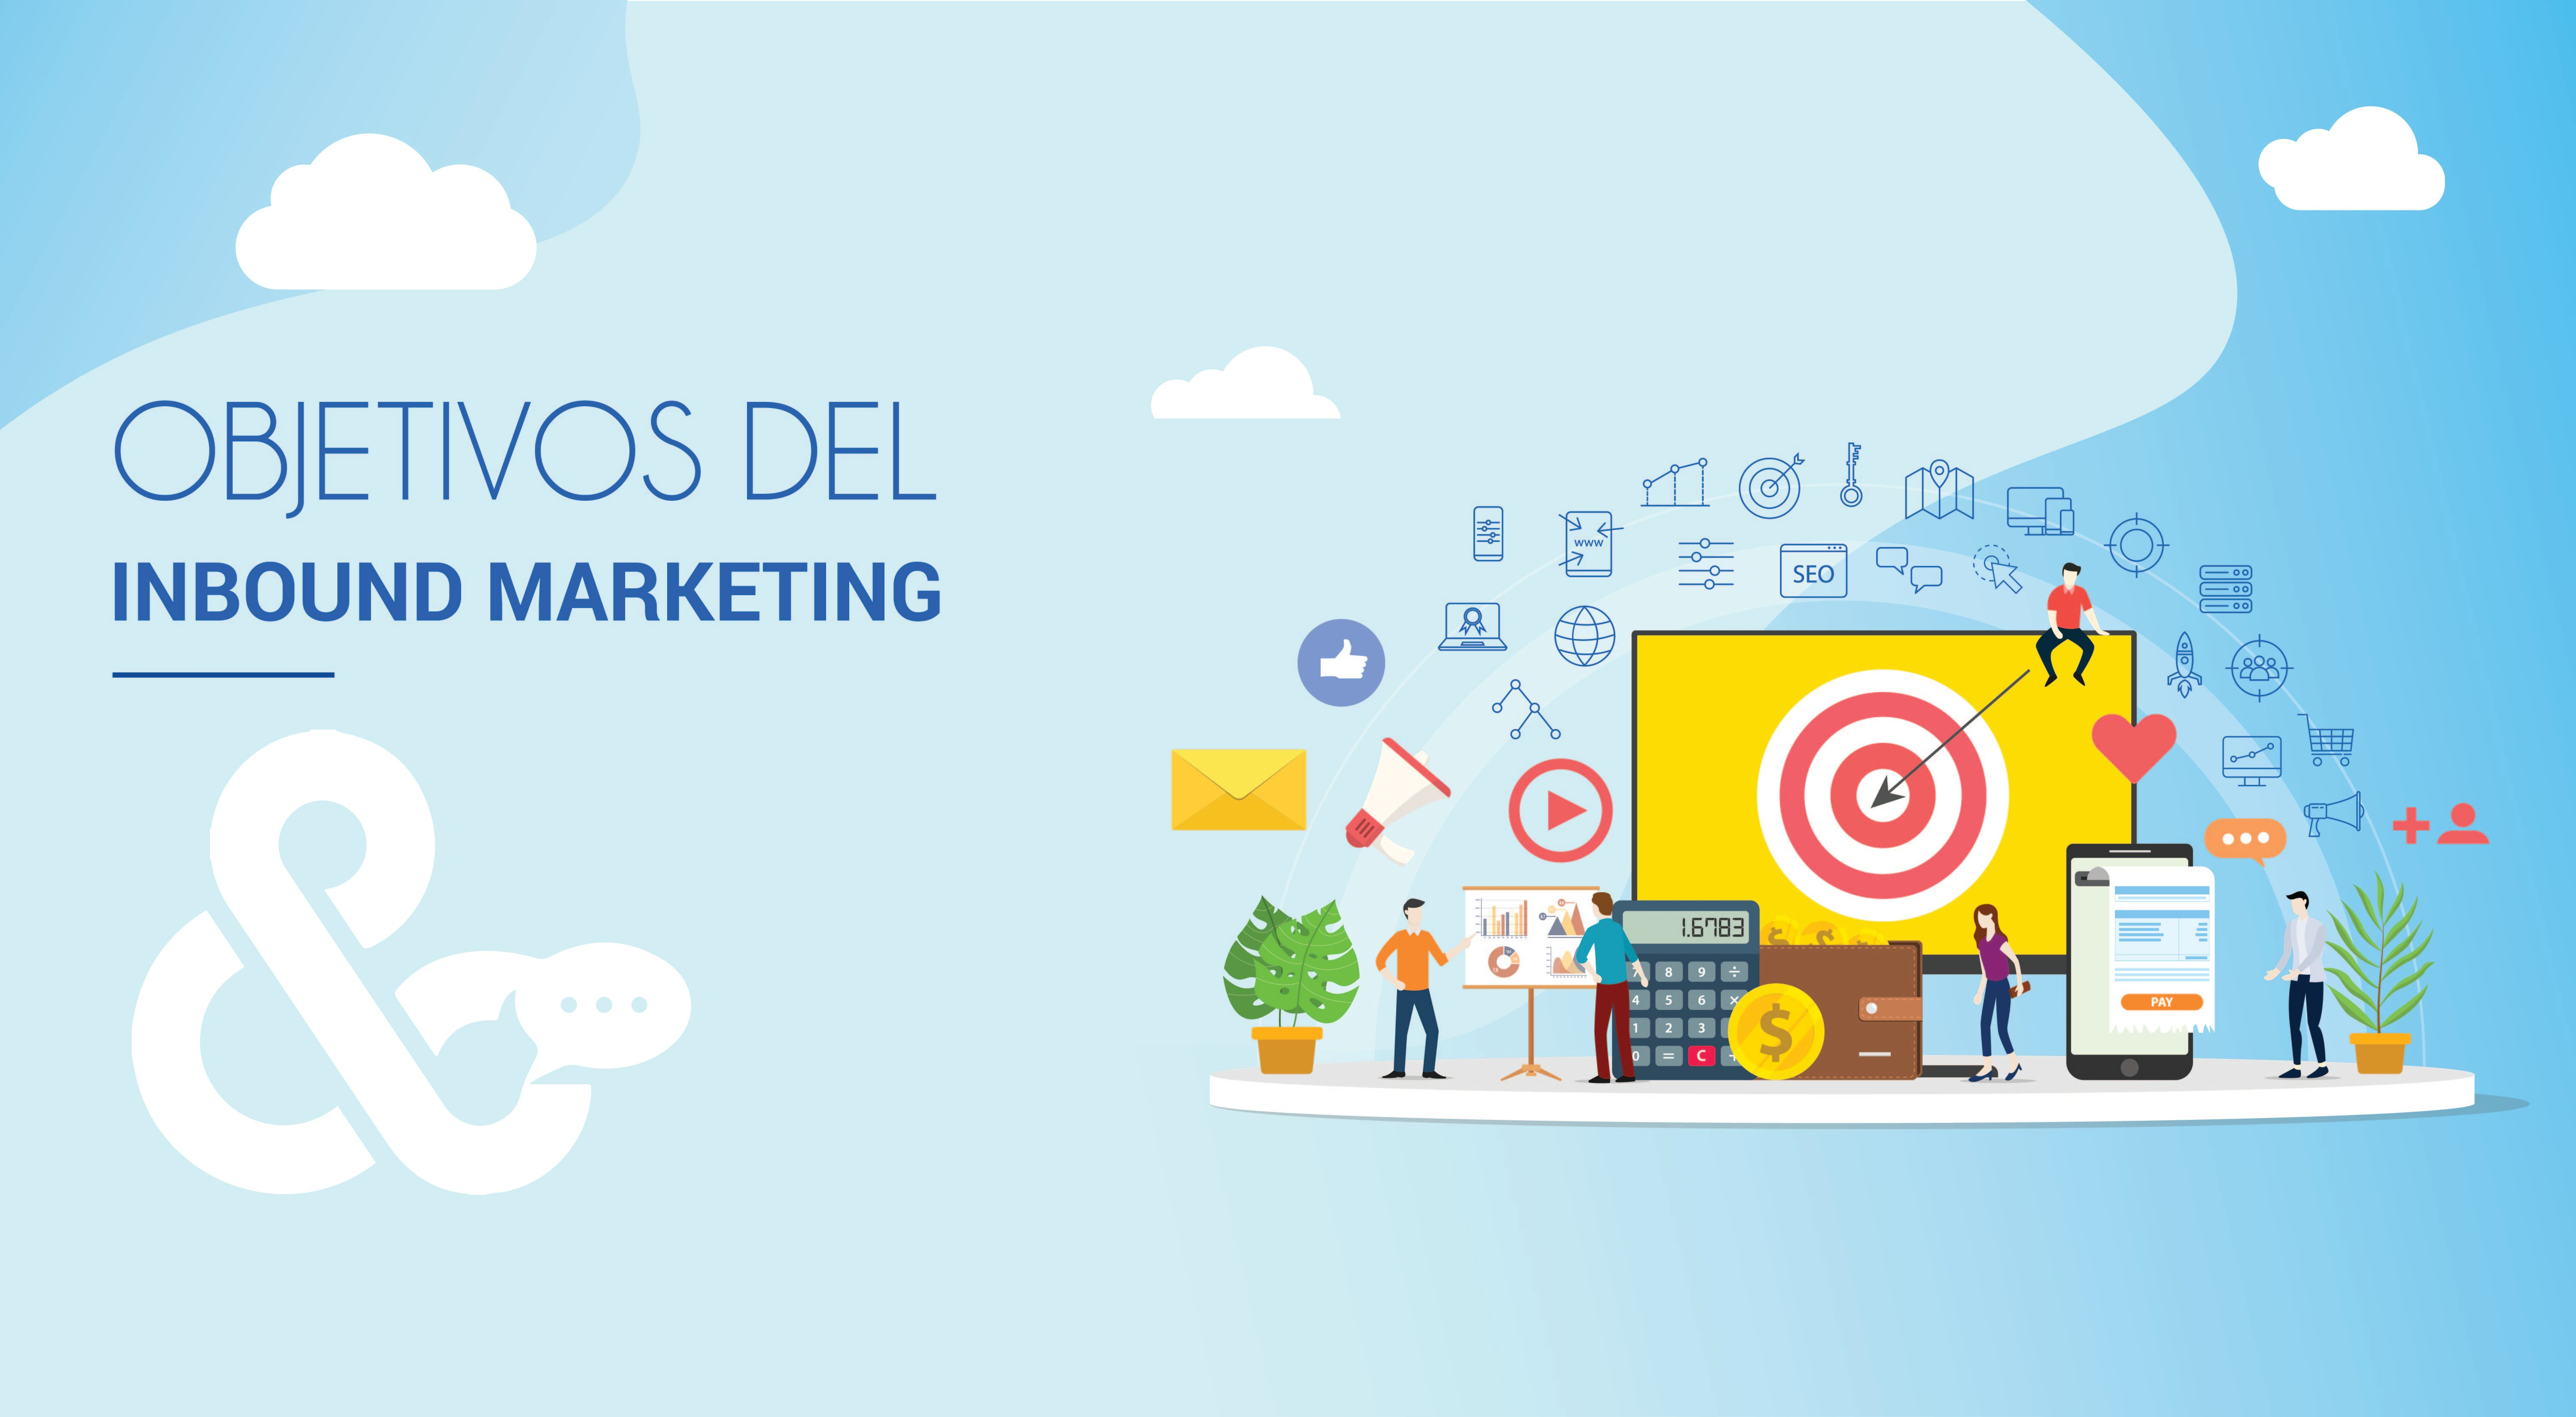 Objetivos del Inbound Marketing